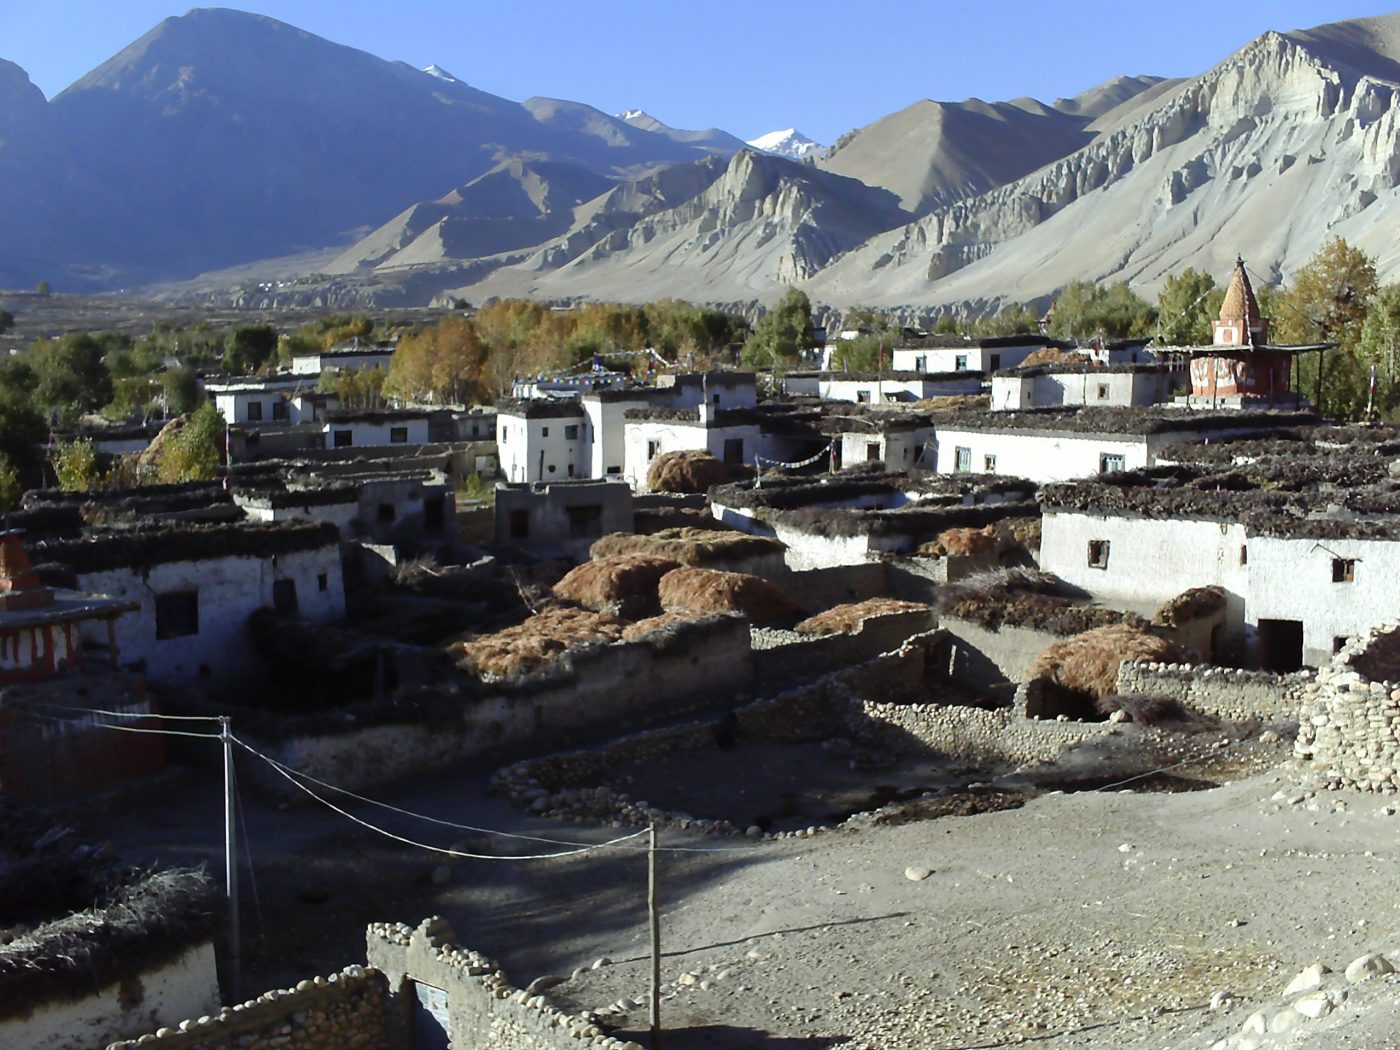 Trek to a forbidden kingdom of Mustang